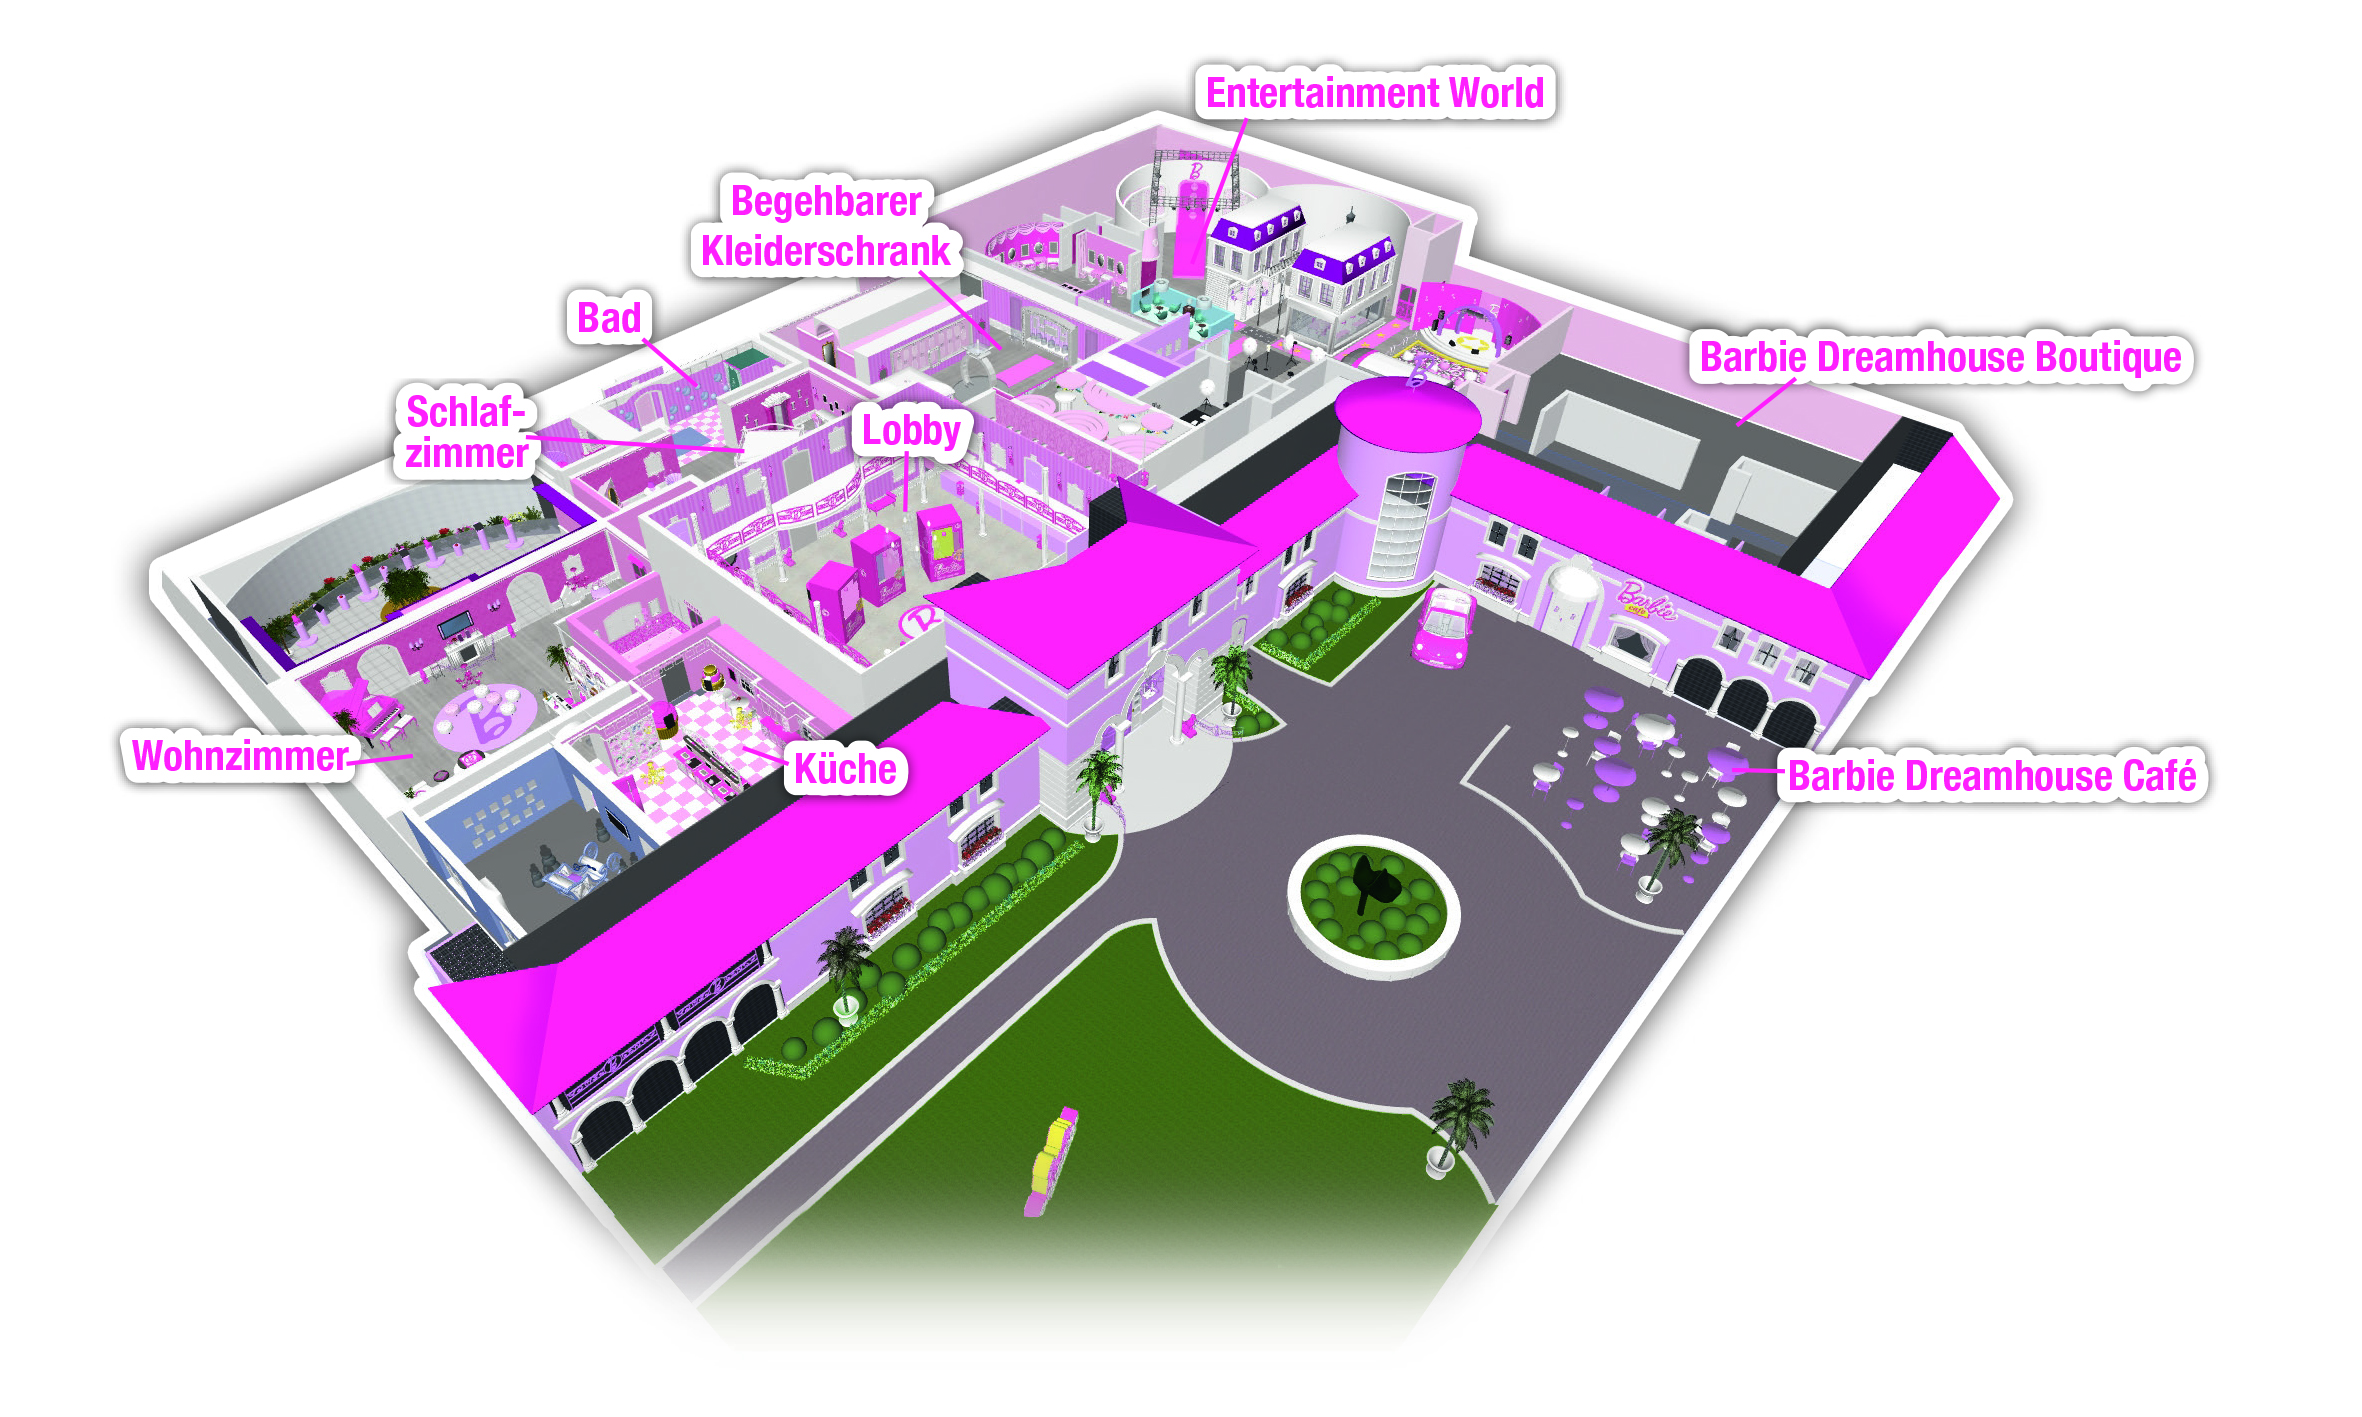 Barbie the dreamhouse experience photo gallery ems for Dream house website